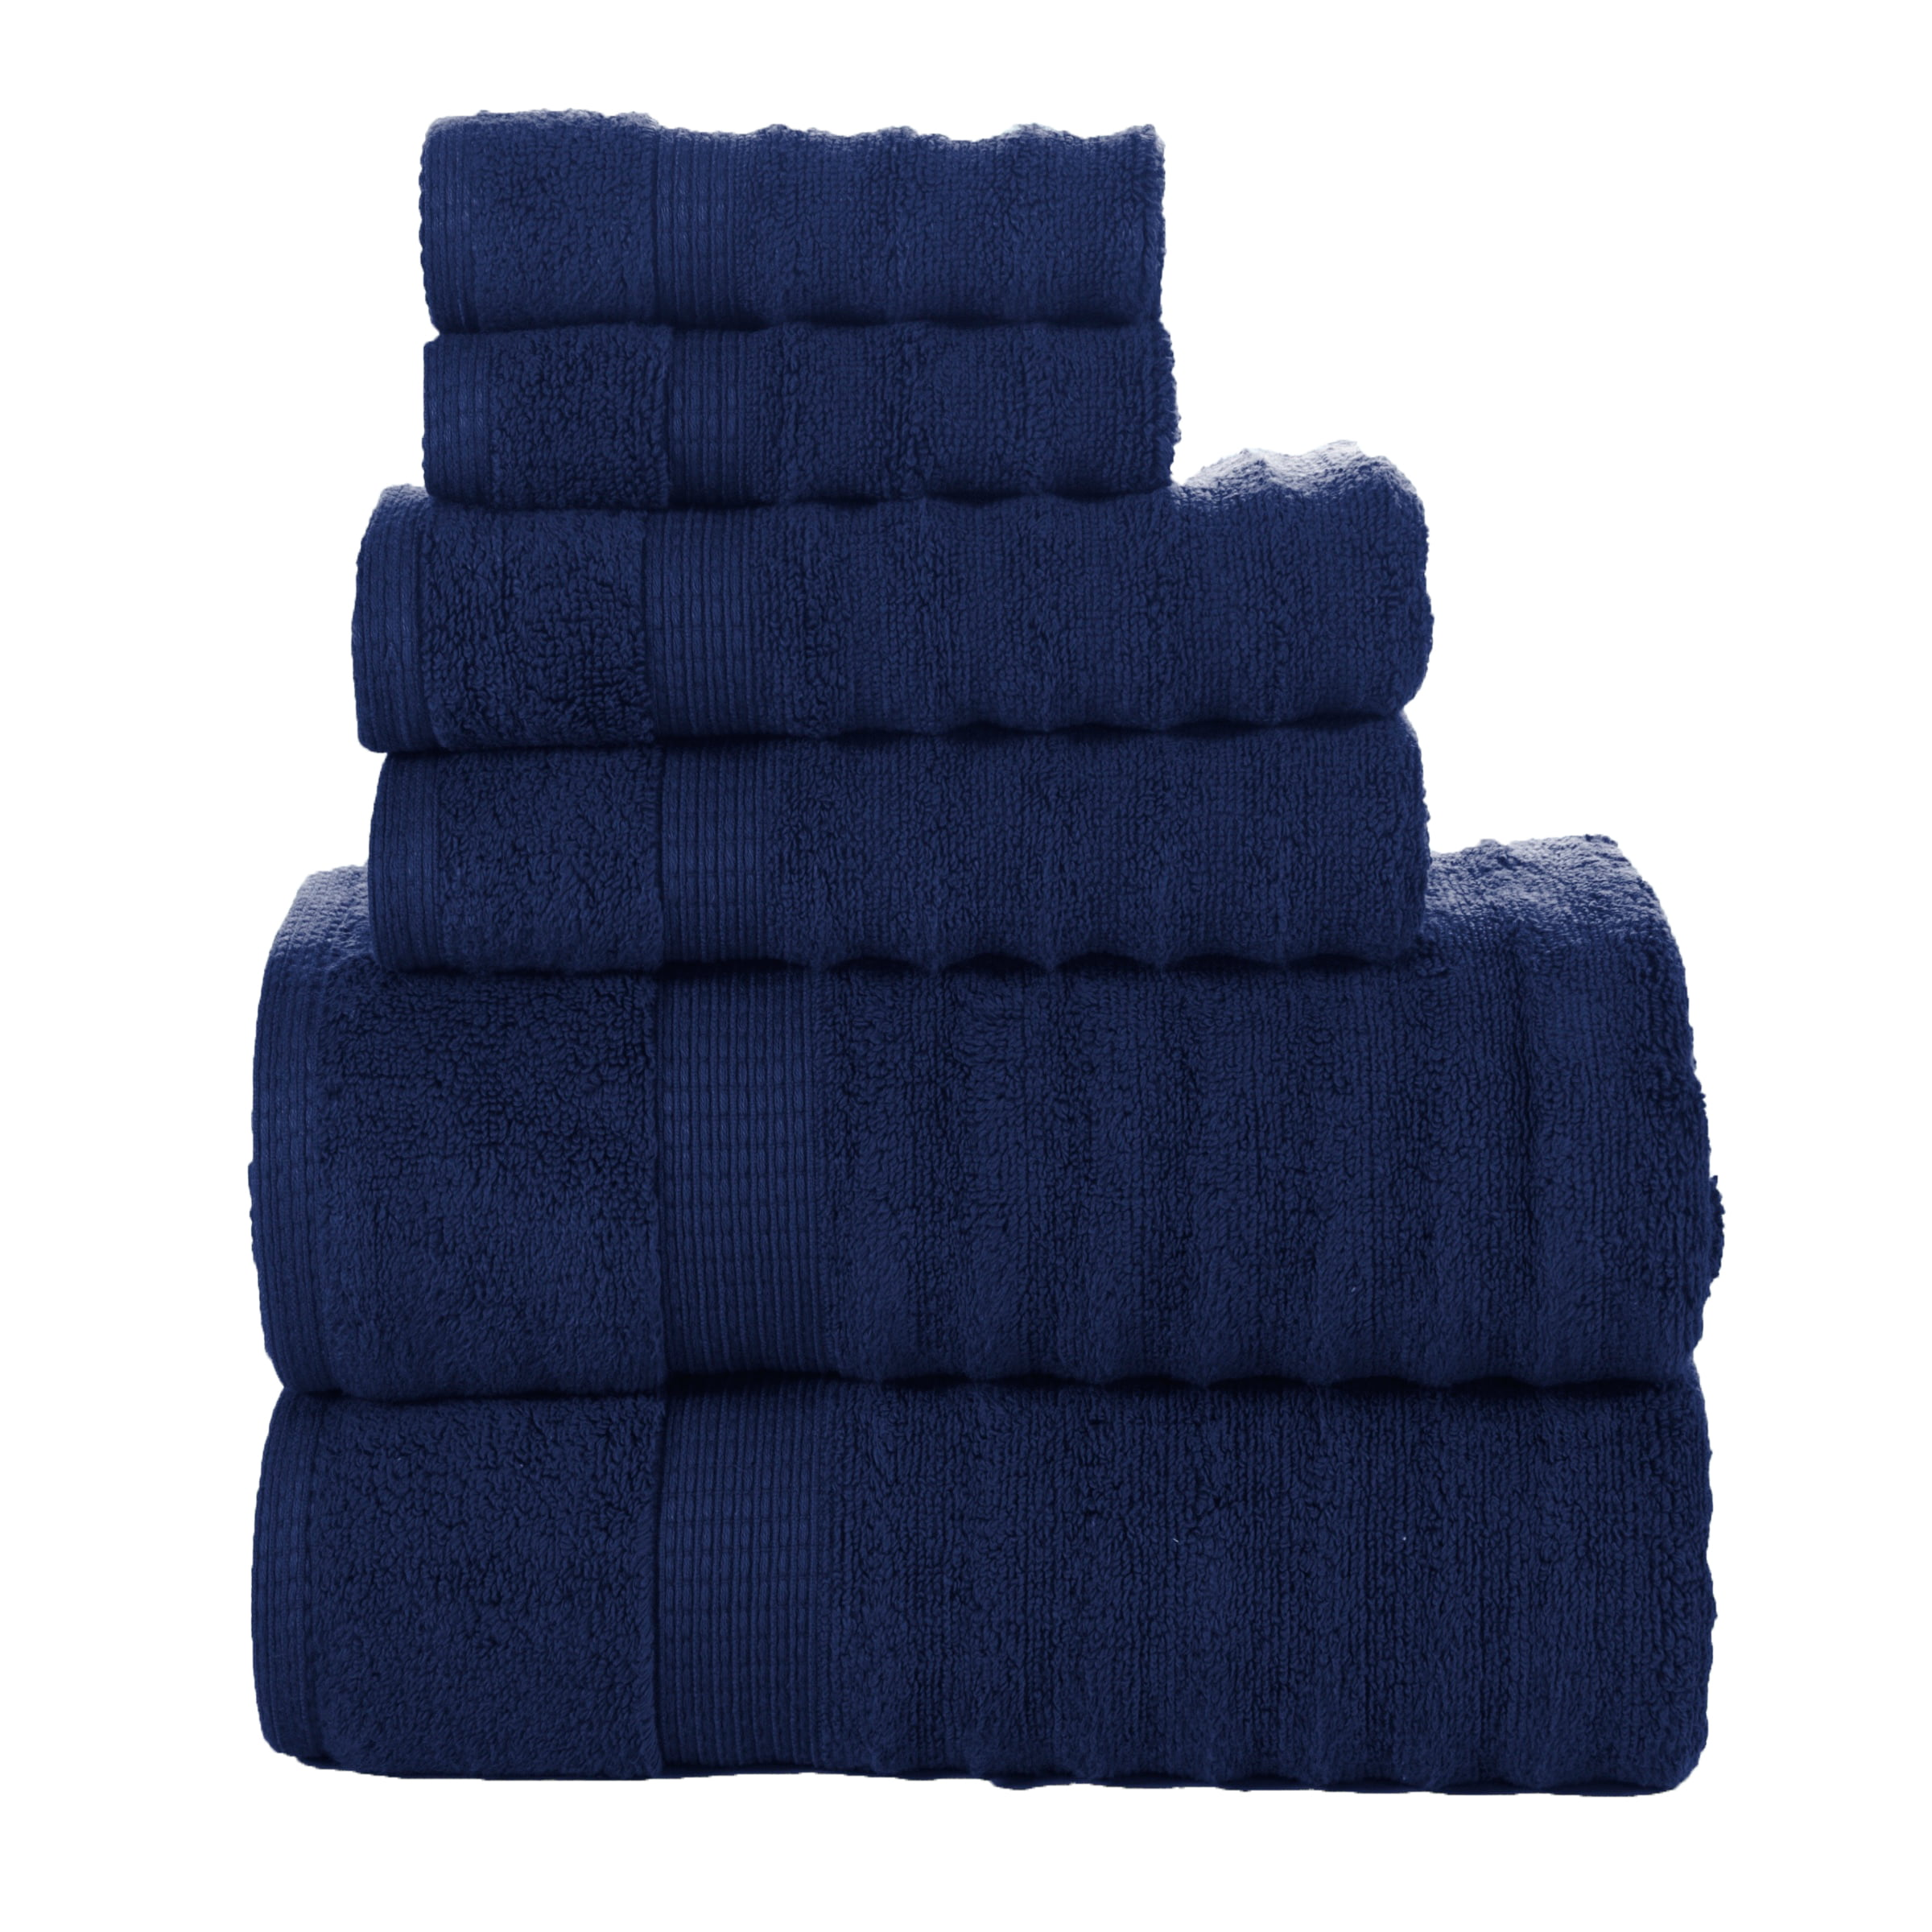 Quick Dry-Elegance Spa 100-percent Egyptian Cotton Ribbed 6-piece Towel Set by Affinity Linens